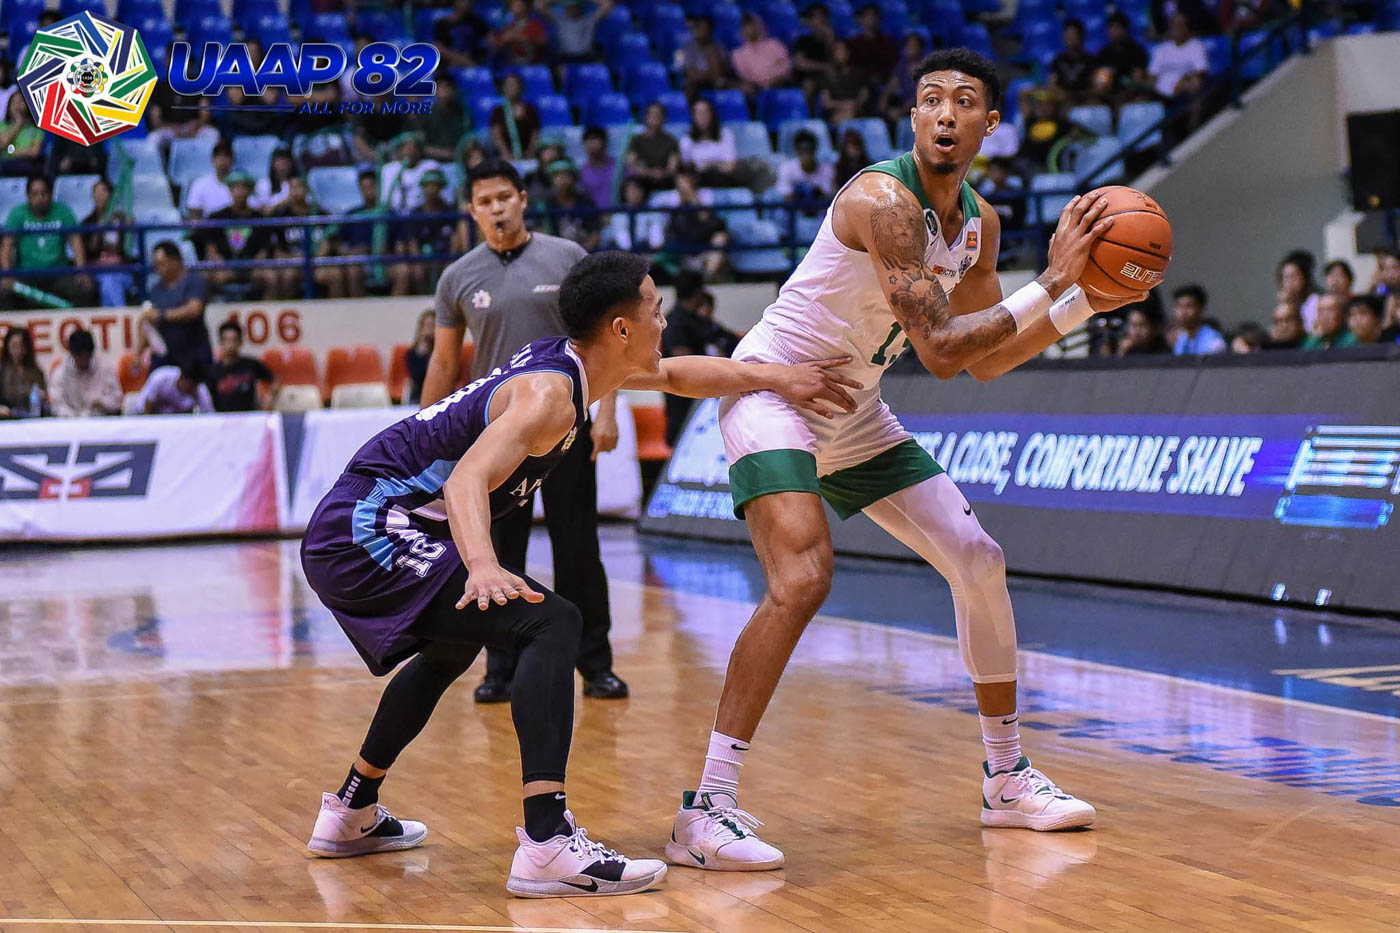 BIG BOOST. Fil-Am Jamie Malonzo, a consistent double-double performer, drops another one with 12 points and 11 rebounds to help the Green Archers pick up a second win. Photo release